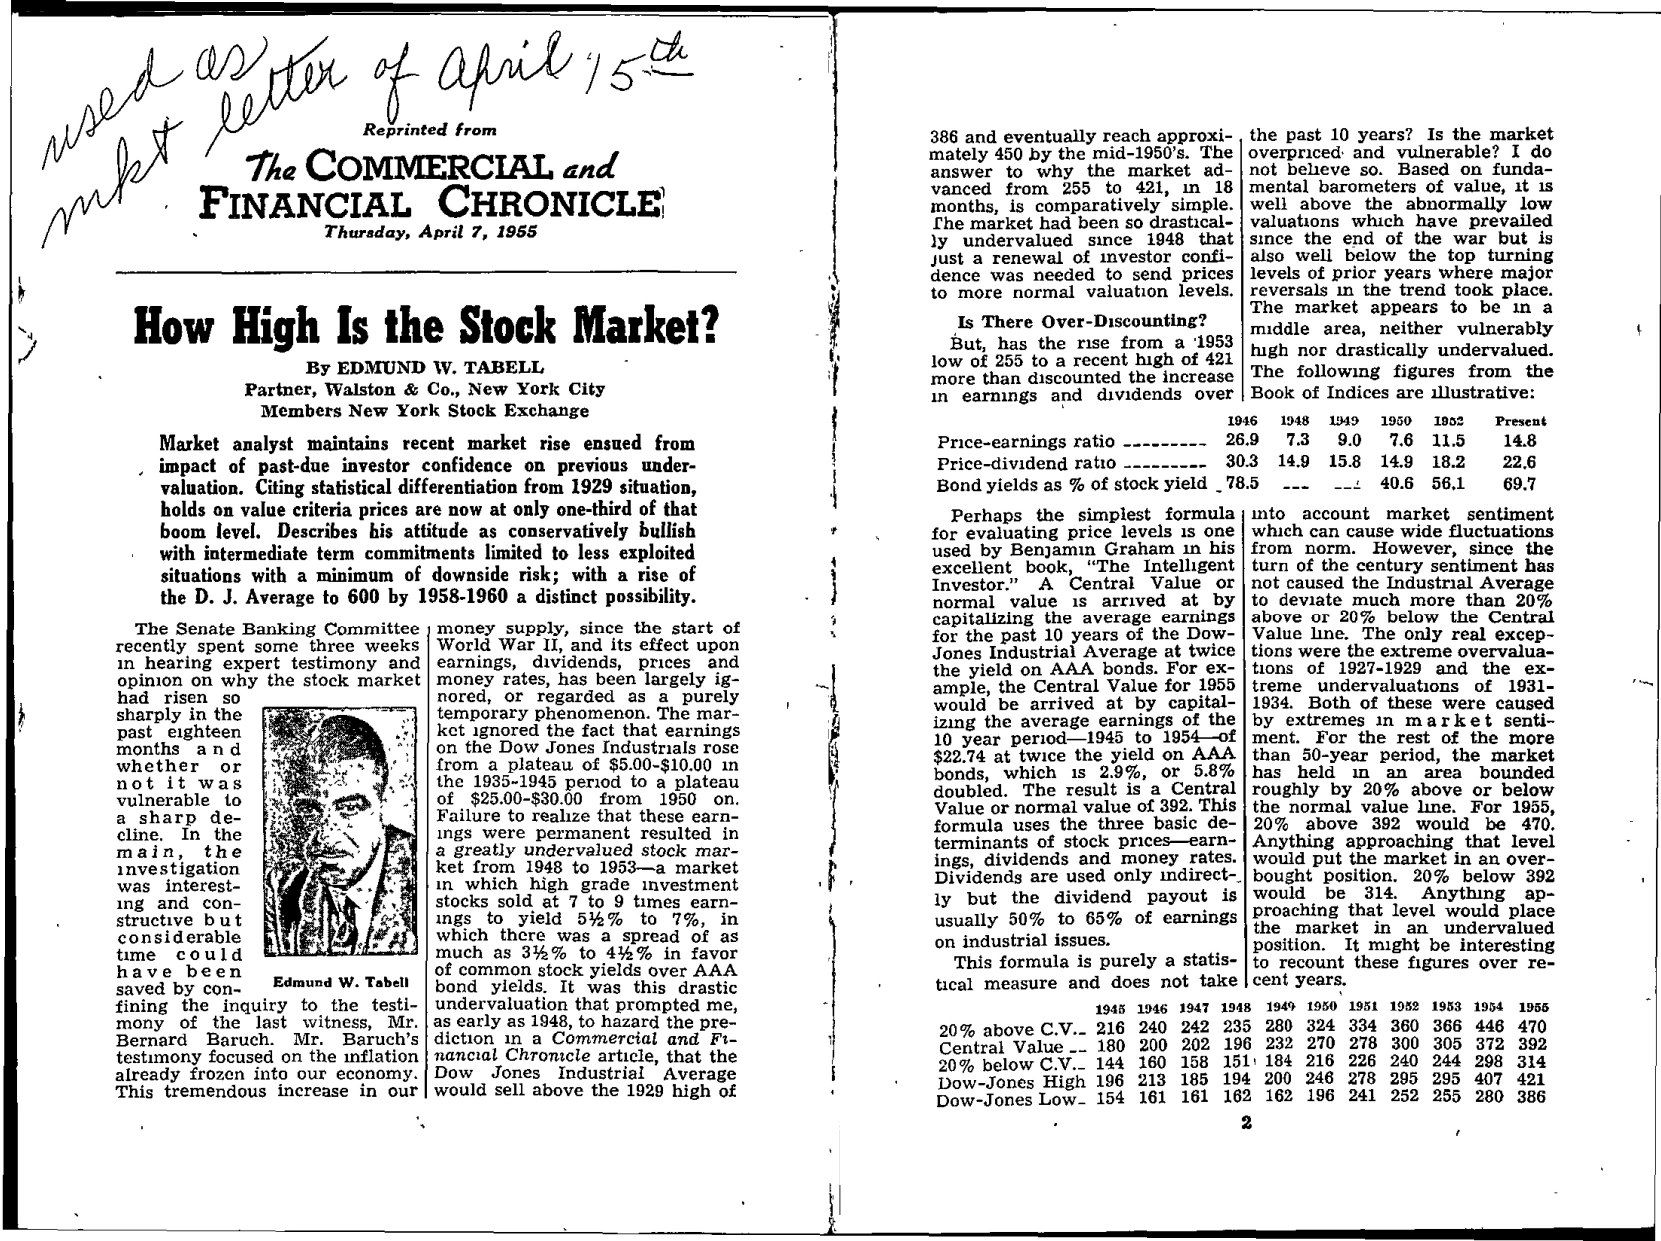 Tabell's Market Letter - April 15, 1955 page 1